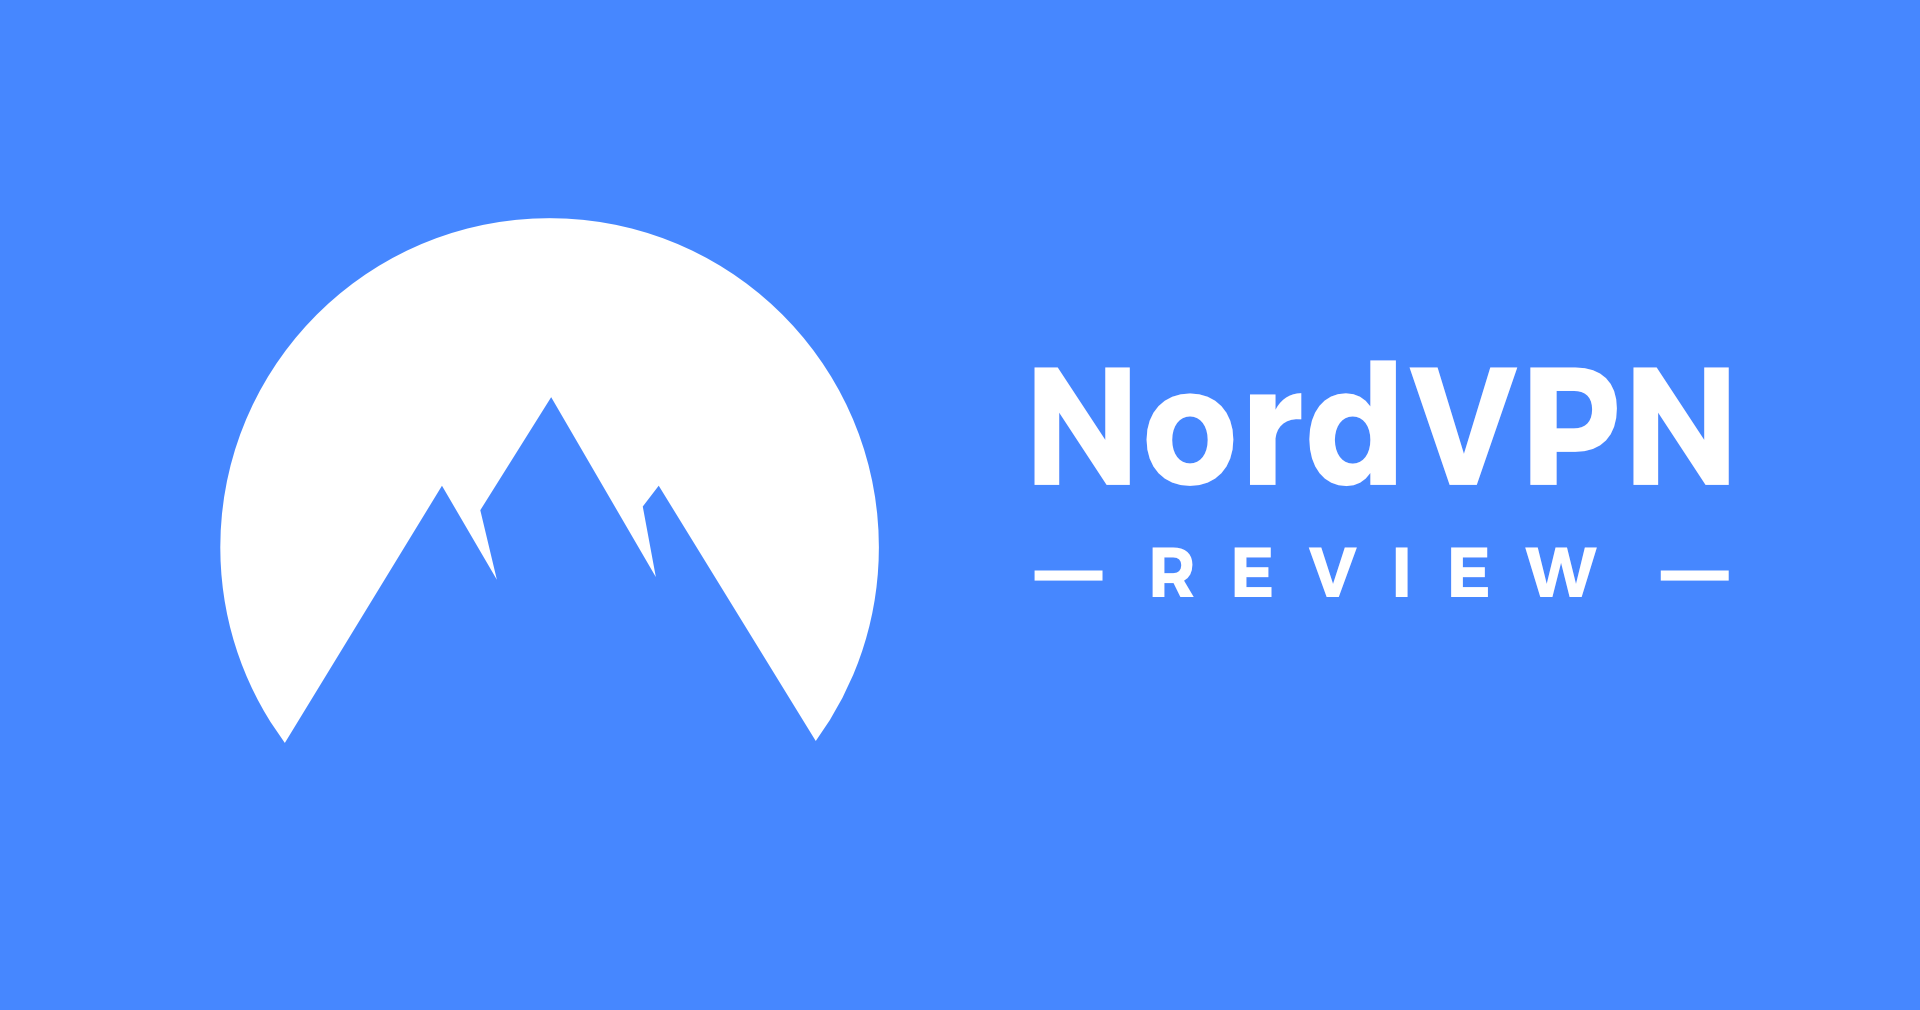 NordVPN Review: What's True & What's Hype?